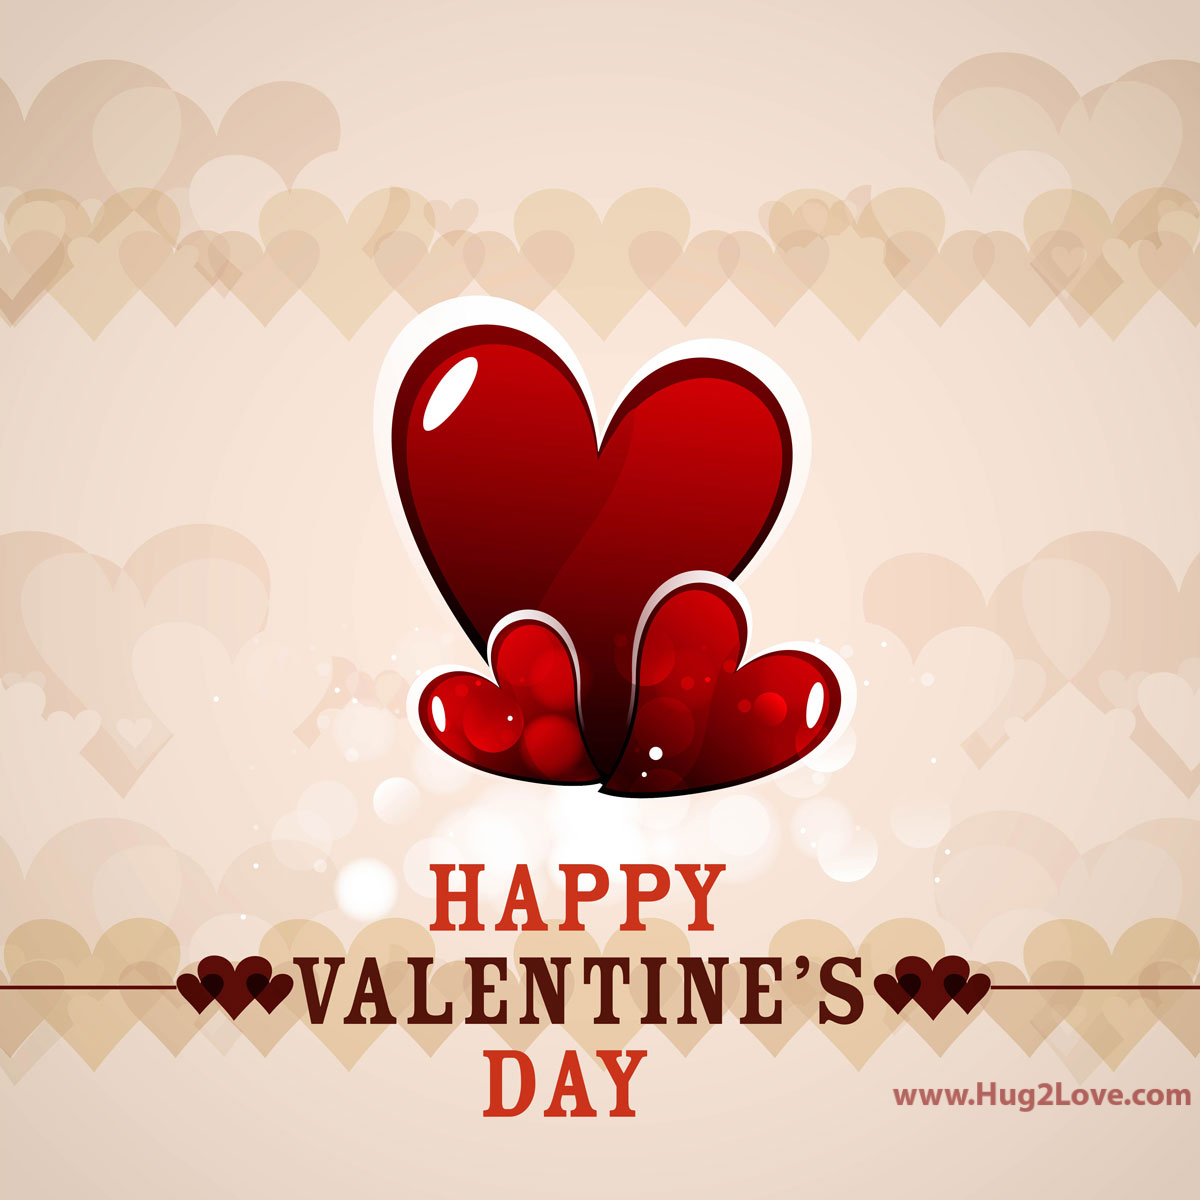 download 100 Happy Valentines Day Images Wallpapers 2020 1200x1200